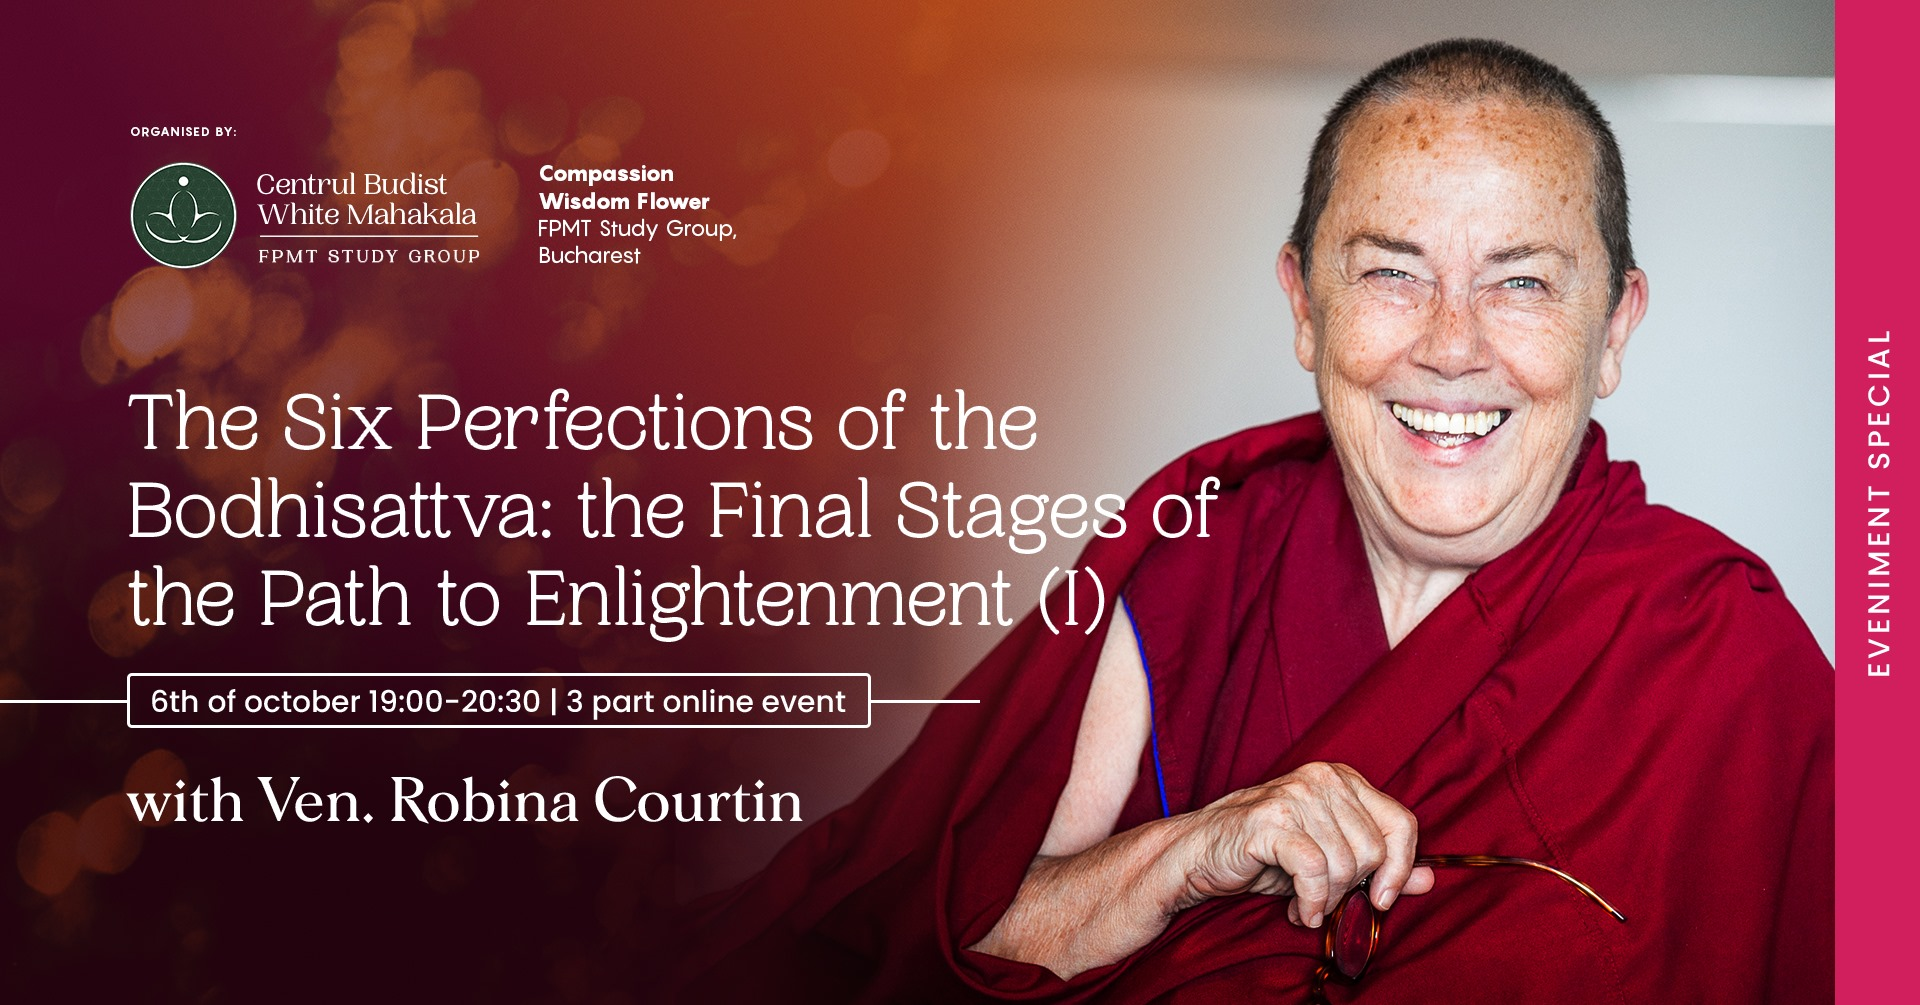 The Six Perfections of the Bodhisattva: the Final Stages of the Path to Enlightenment